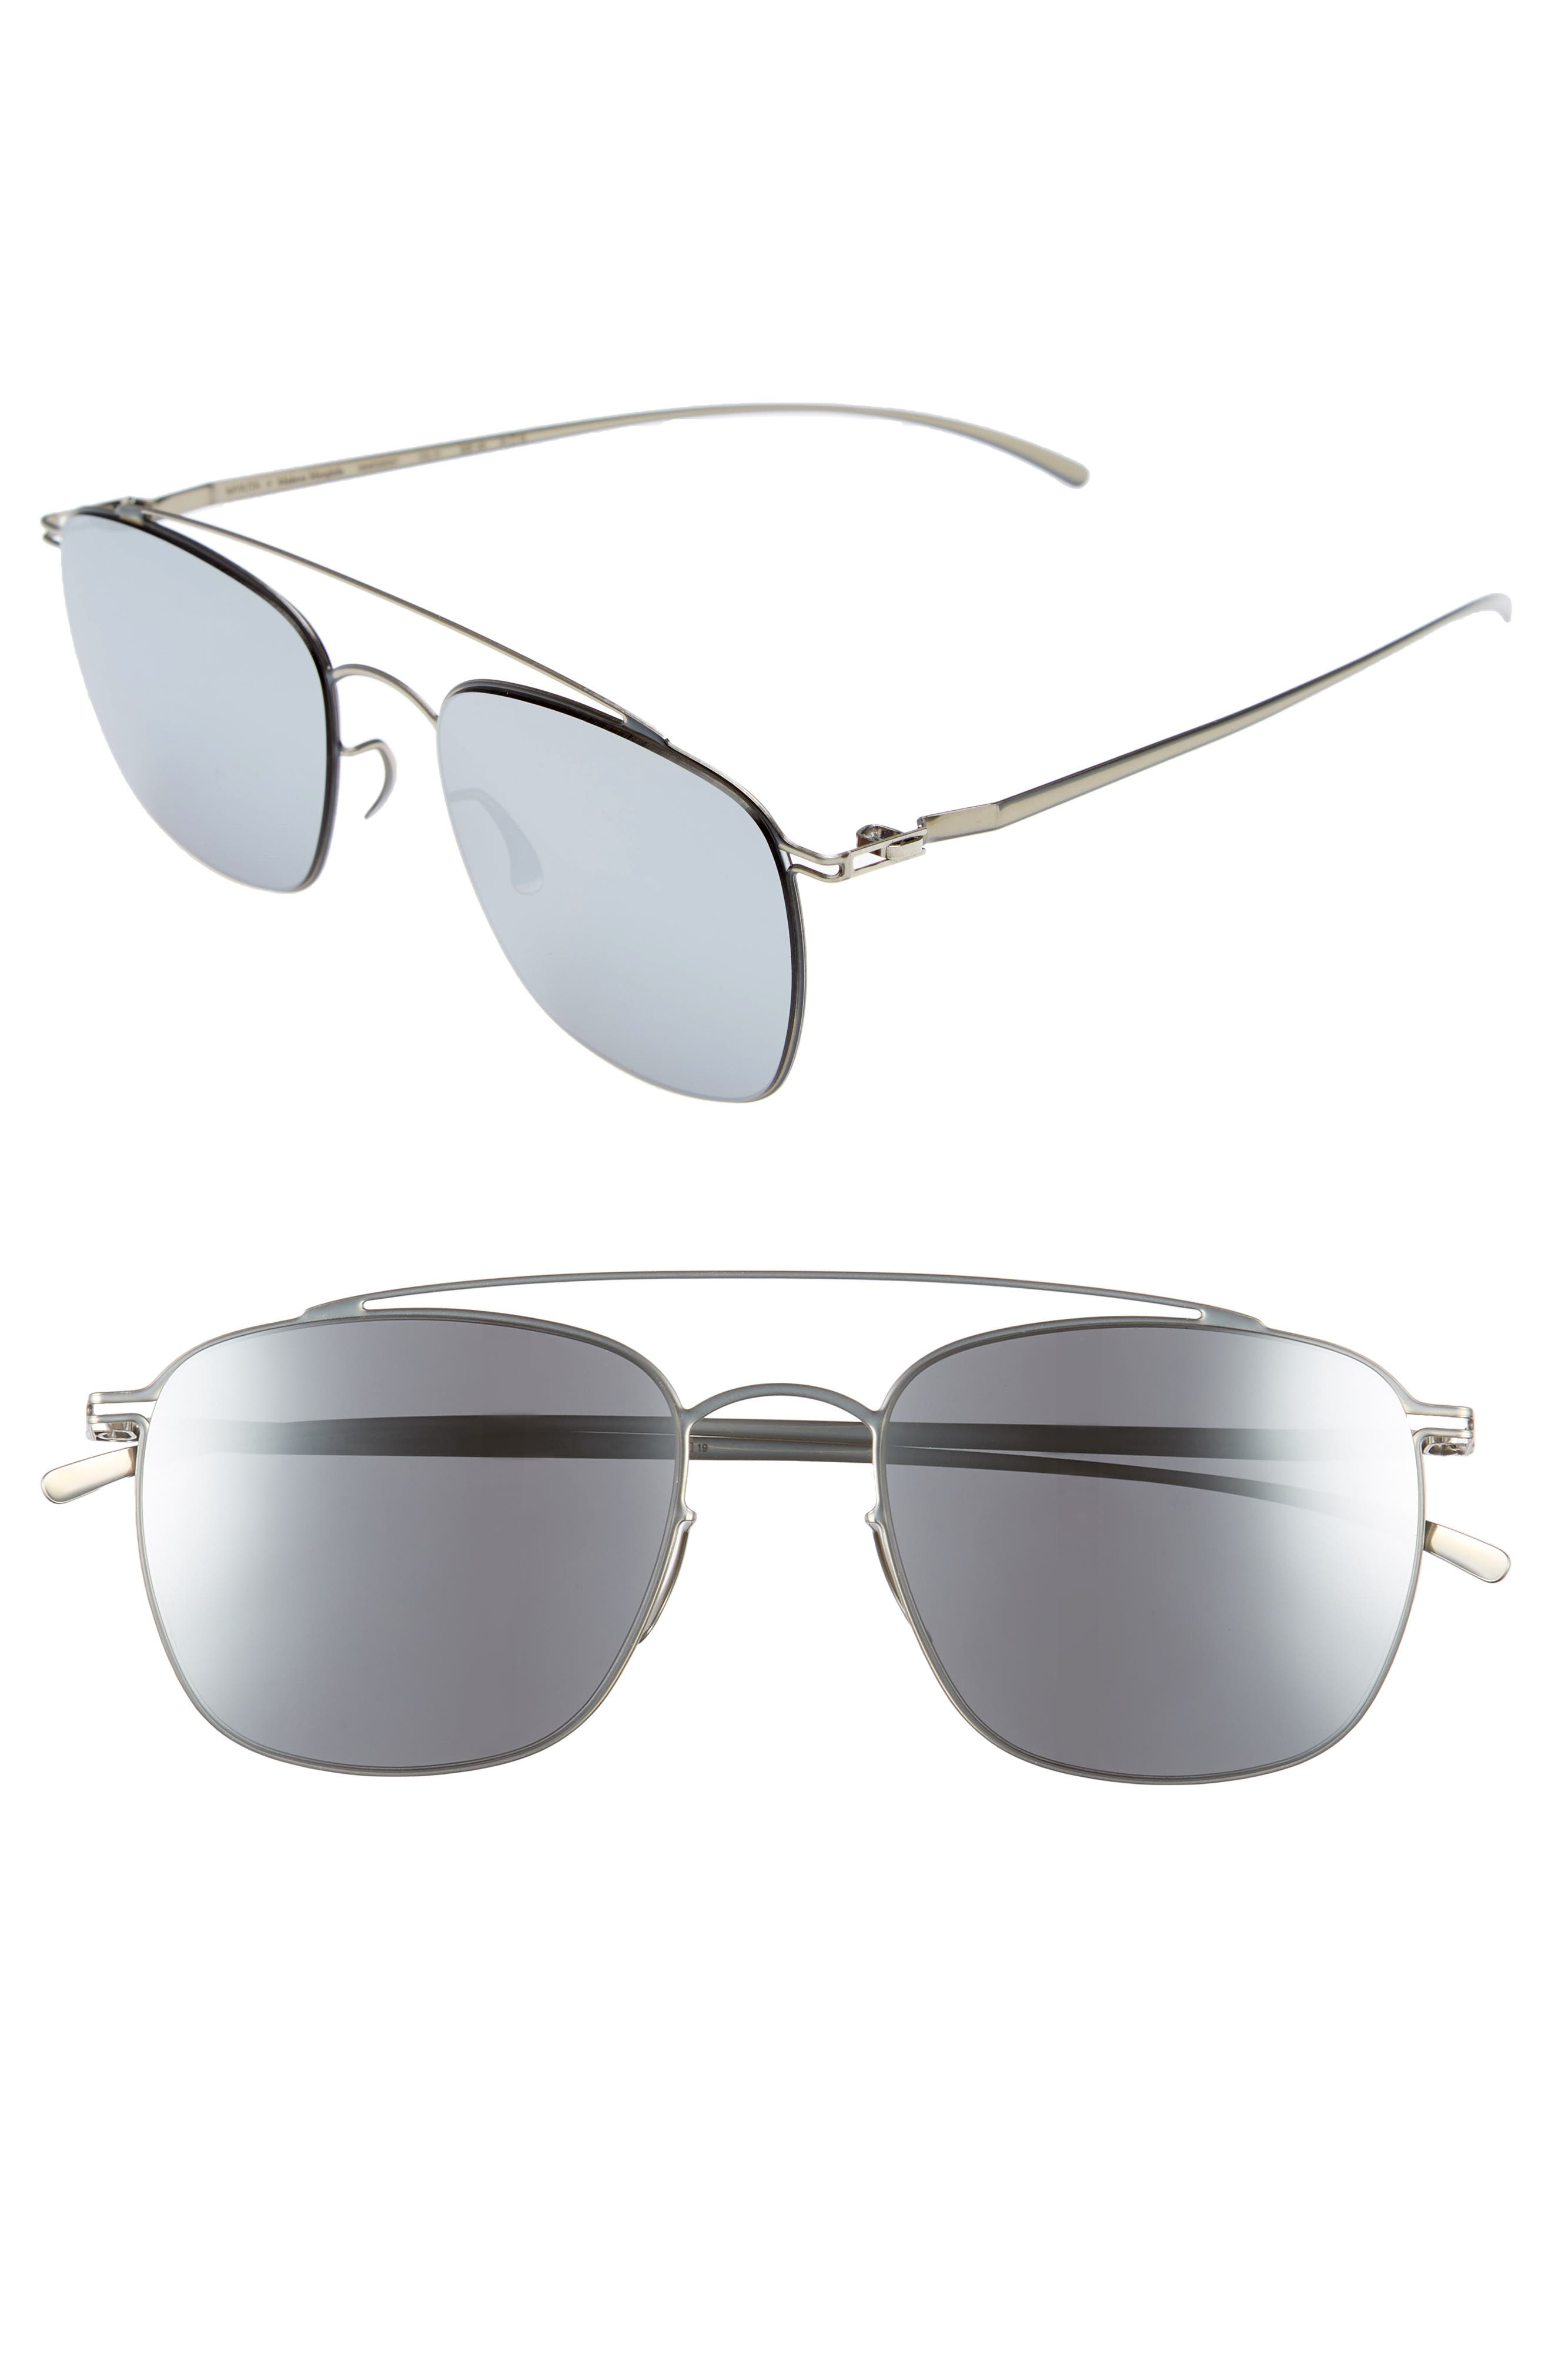 MMESSE007 51mm Aviator Sunglasses,                             Main thumbnail 1, color,                             Silver